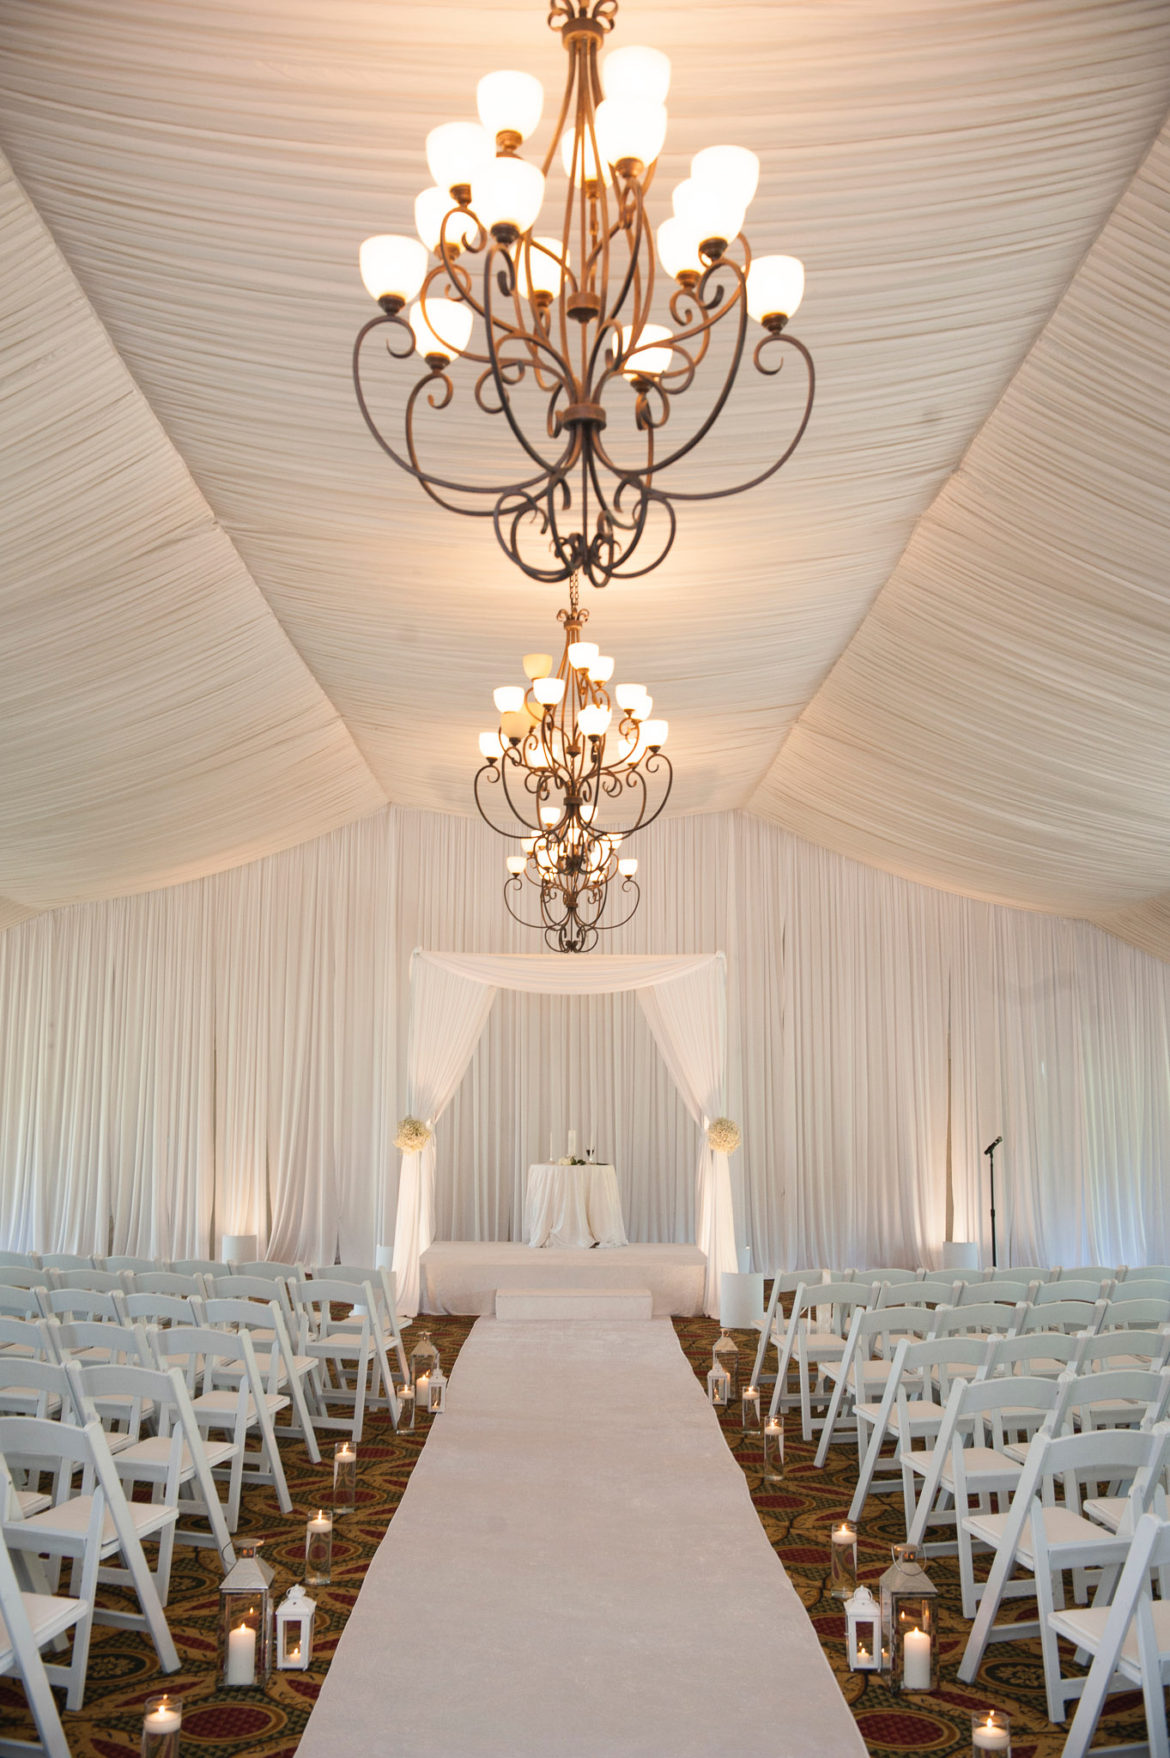 Elegant_Event_Lighting_Chicago_Eaglewood_Resort_Spa_Itasca_Wedding_Draping_White_Tent_Decor_Aisle_Runner_Bridal_Canopy